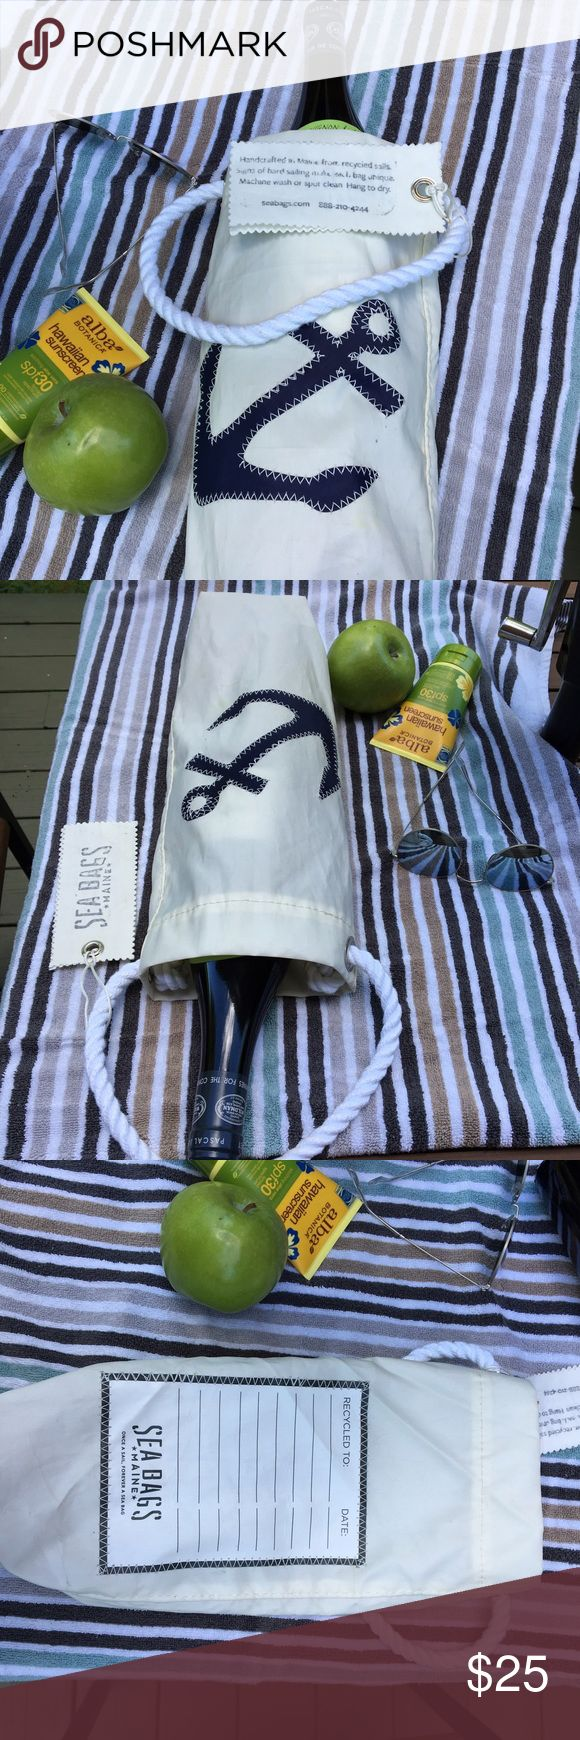 Sea Bags Anchor Wine Bag MWT Price FIRM Handcrafted from recycled sails on the working waterfront in Portland, Maine, the Anchor Wine Bag is all you need to start your adventure. Designed to give over and over, there's a travel log on the back. The blue stitched Anchor is a classic symbol of the recycled sail bags. Retail $35, with a hand-splice rope handle, machine wash, line dry. Imperfections are part of the charm of this bag. Literally crafted from a recycled sailboat sail, take a piece…